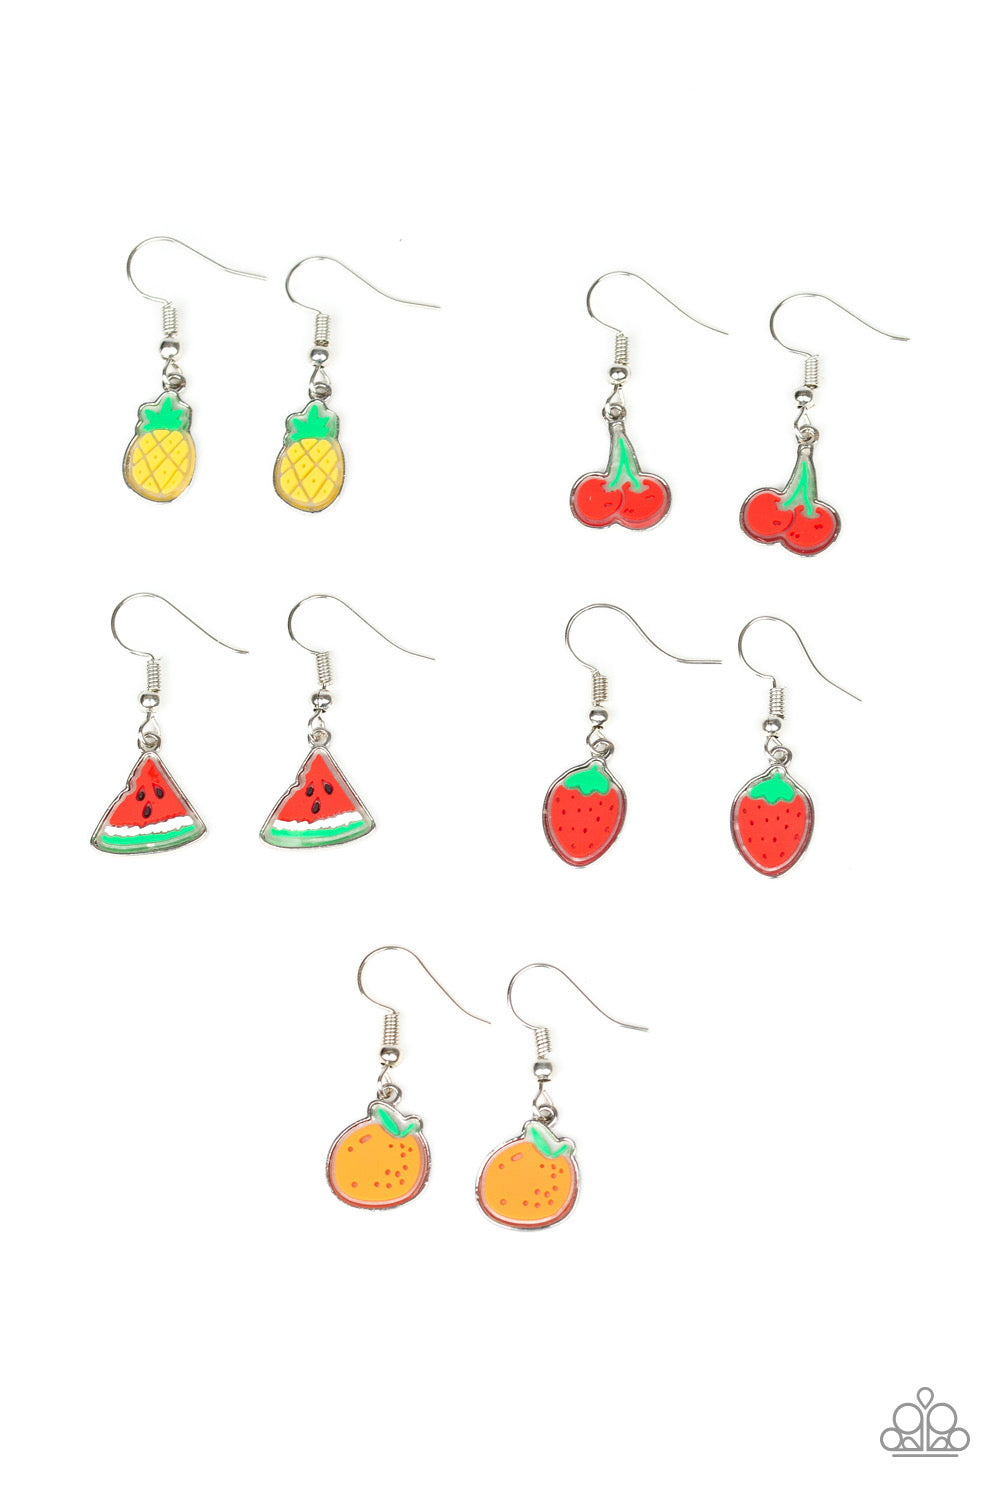 Paparazzi $5 Set of Starlet Shimmer Fruity Earrings